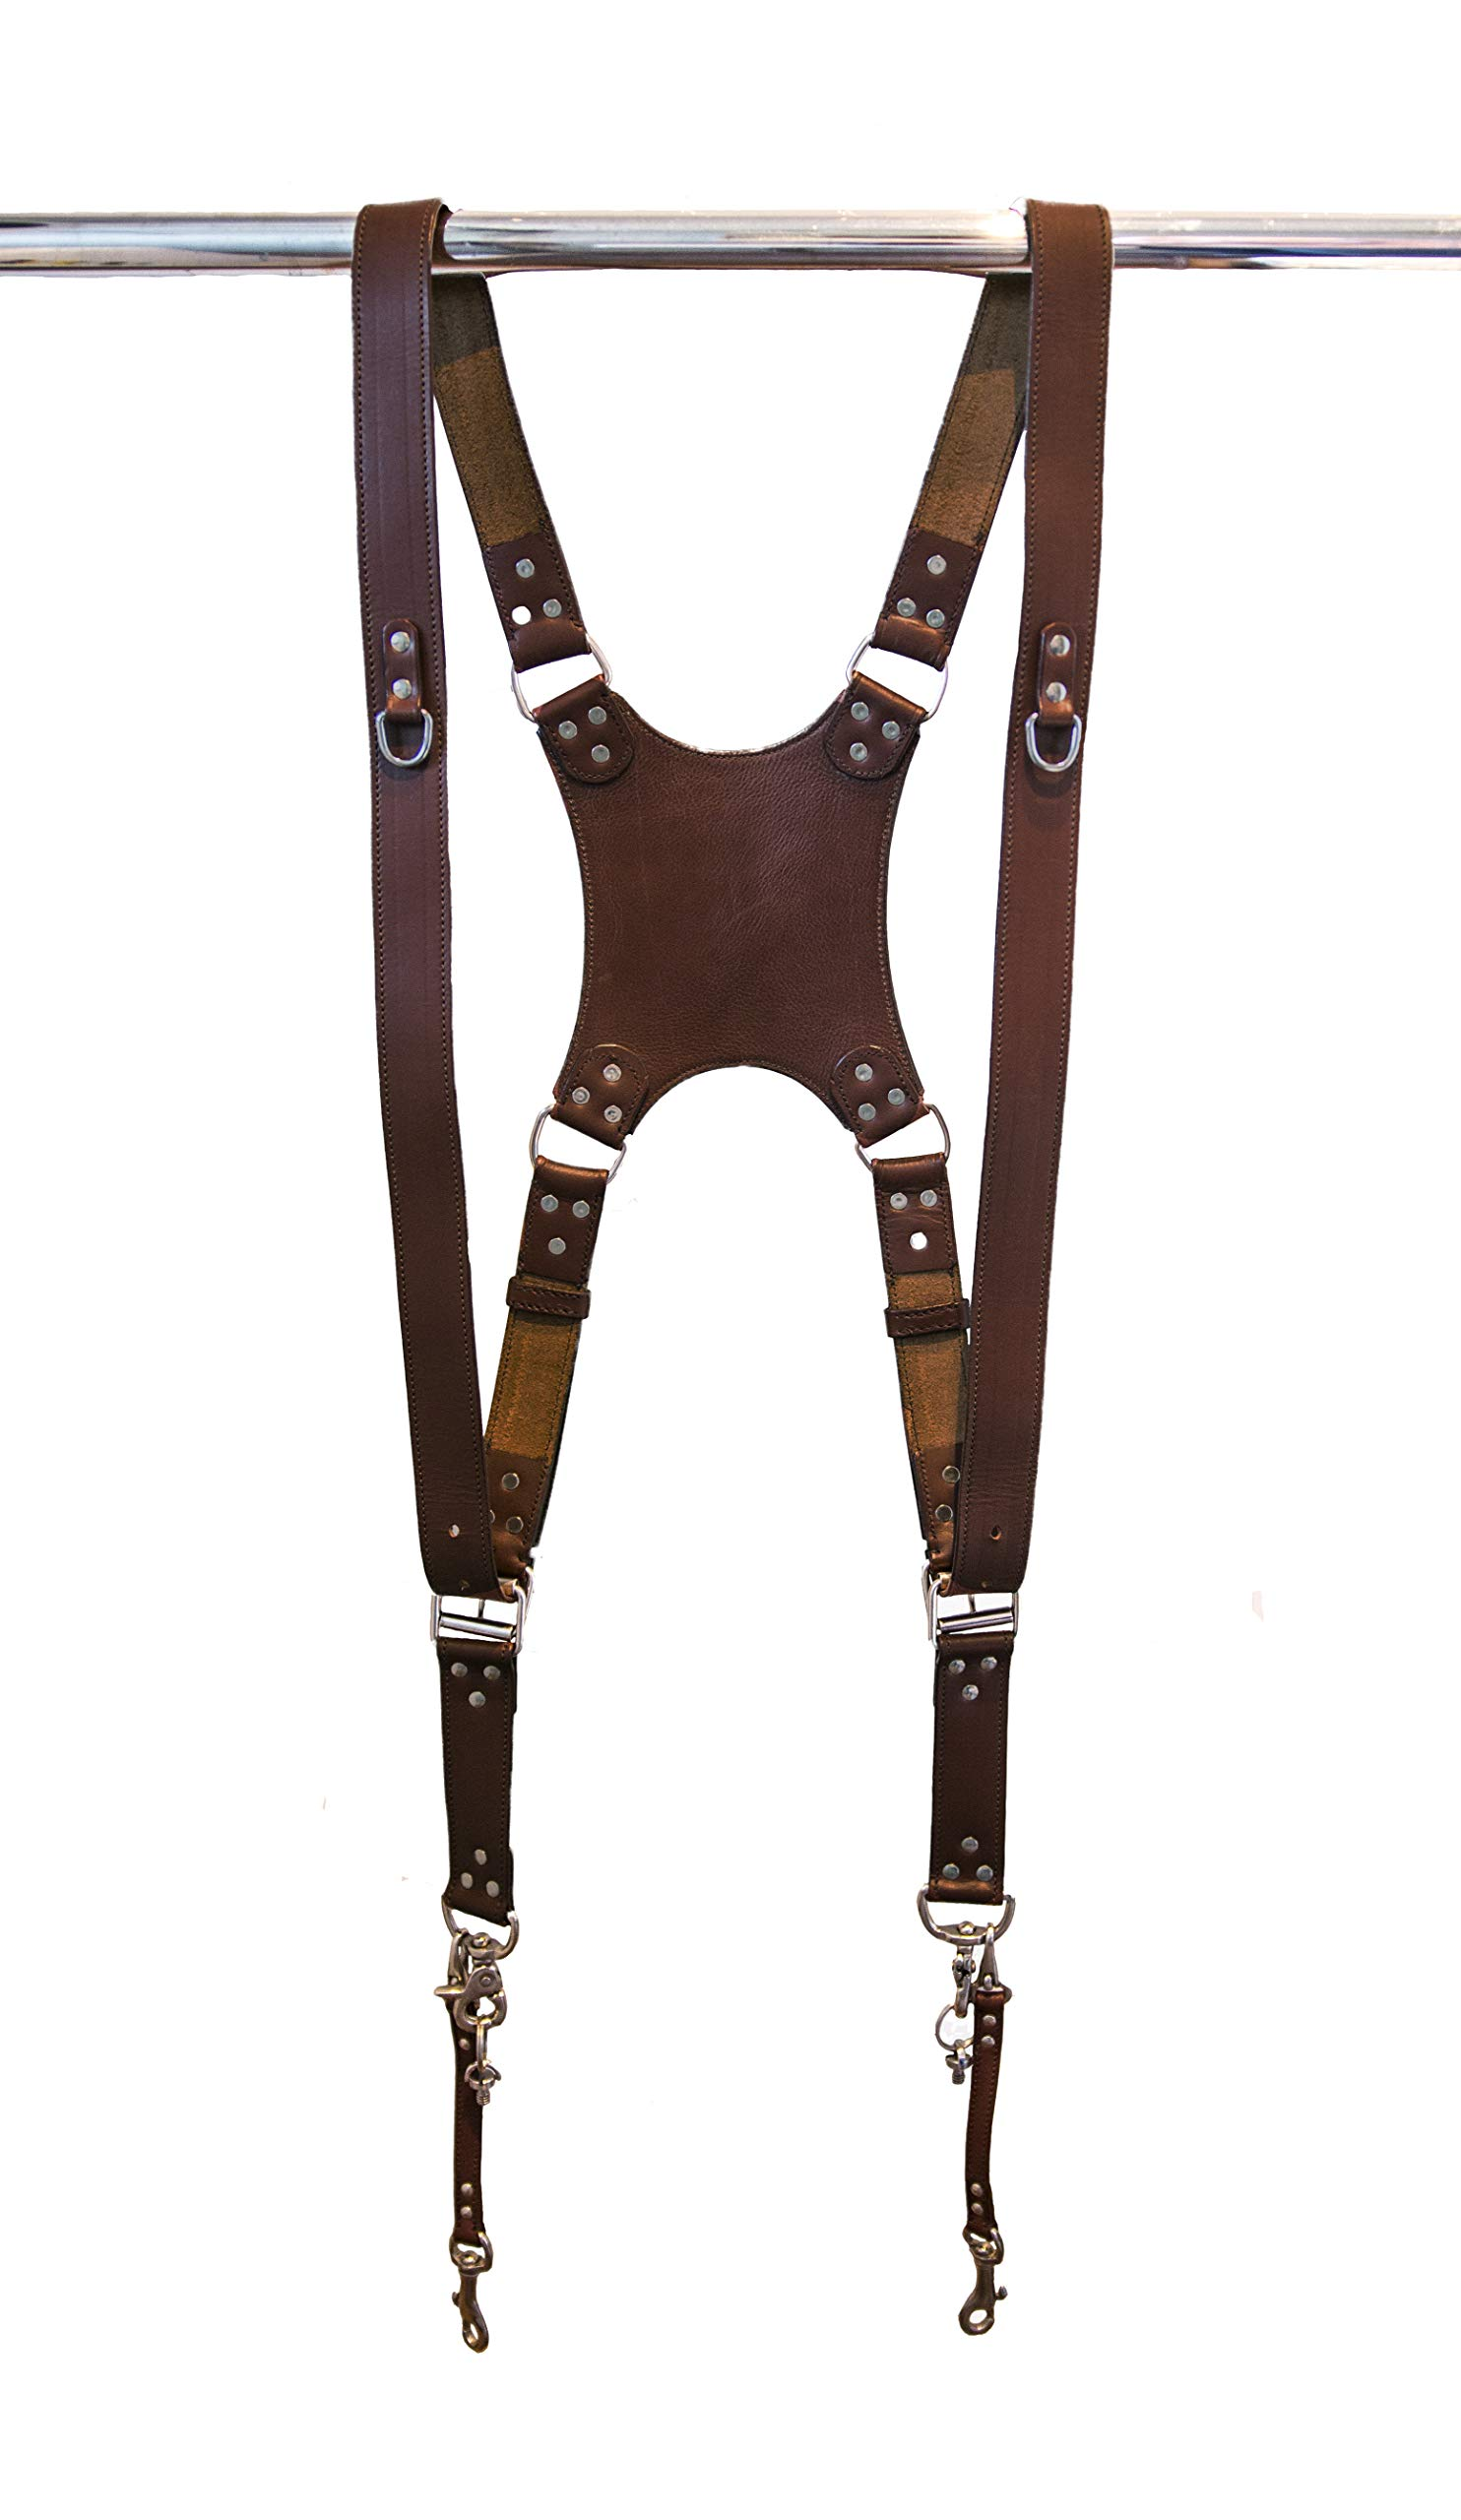 Dual Leather Camera Harness - Camera Strap Accessories for Two-Cameras - Camera Gear for DSLR/SLR by Trendy Camera Crew